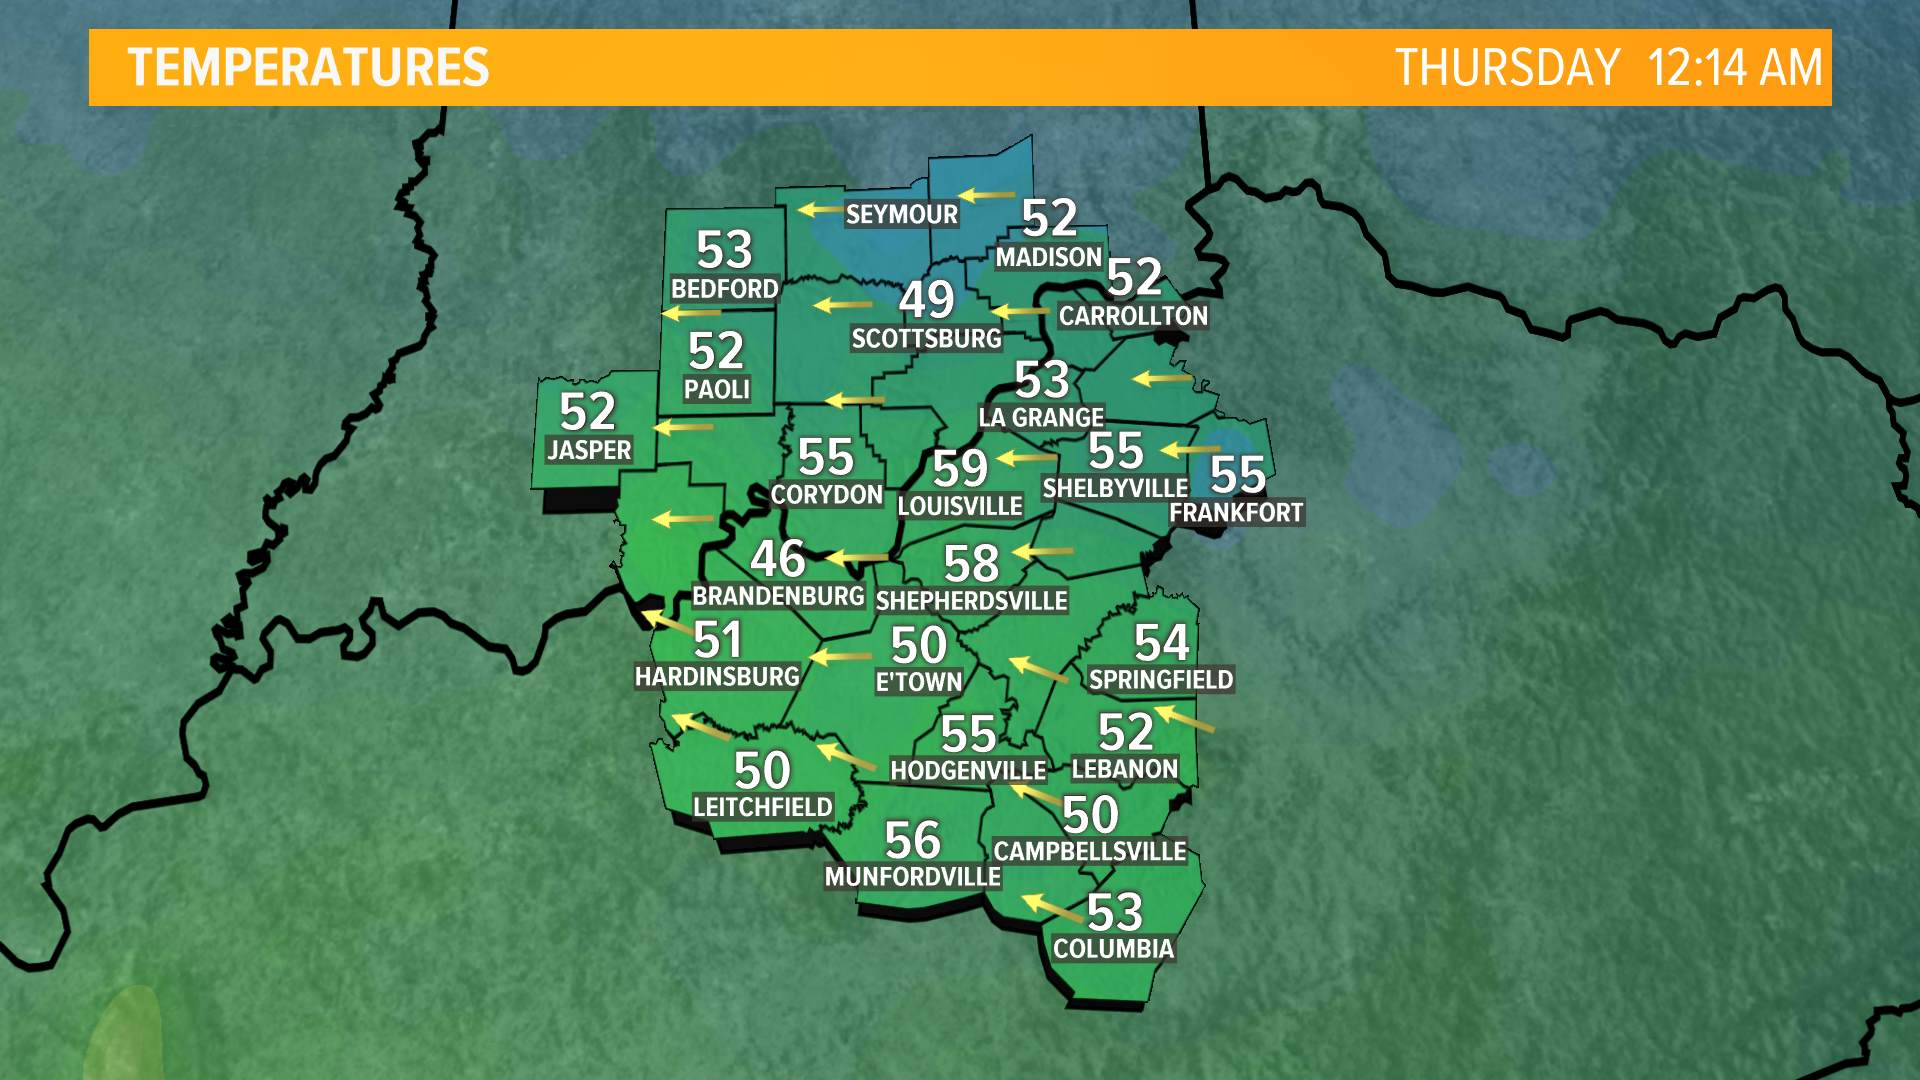 Ohio Valley Temps